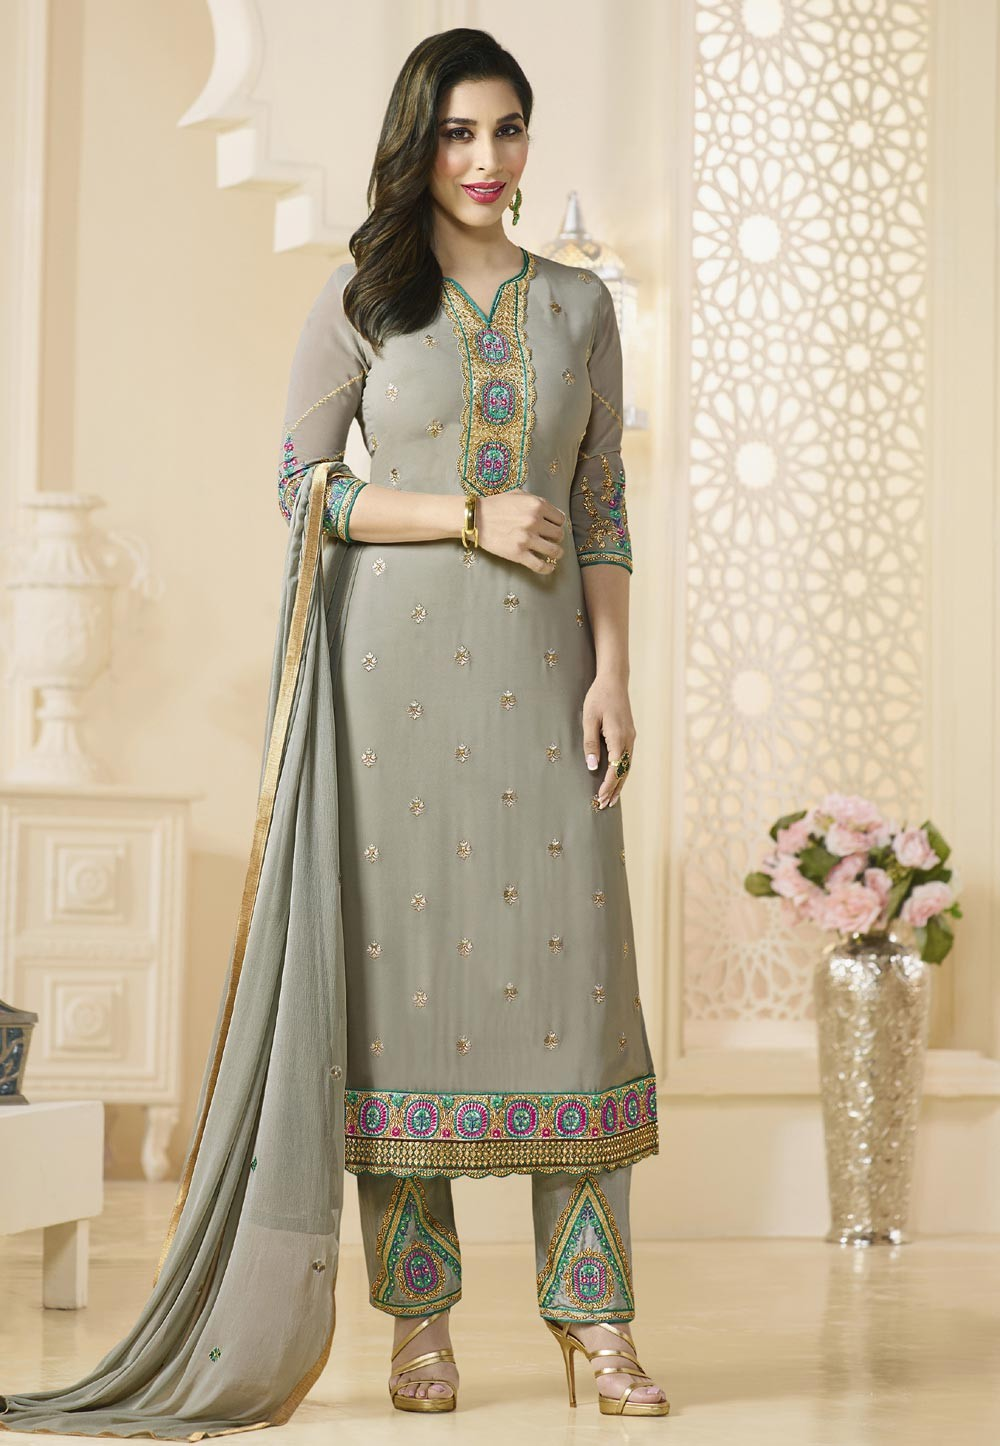 Georgette & Grey Color Straight Cut Style Incredible Unstitched Salwar Kameez